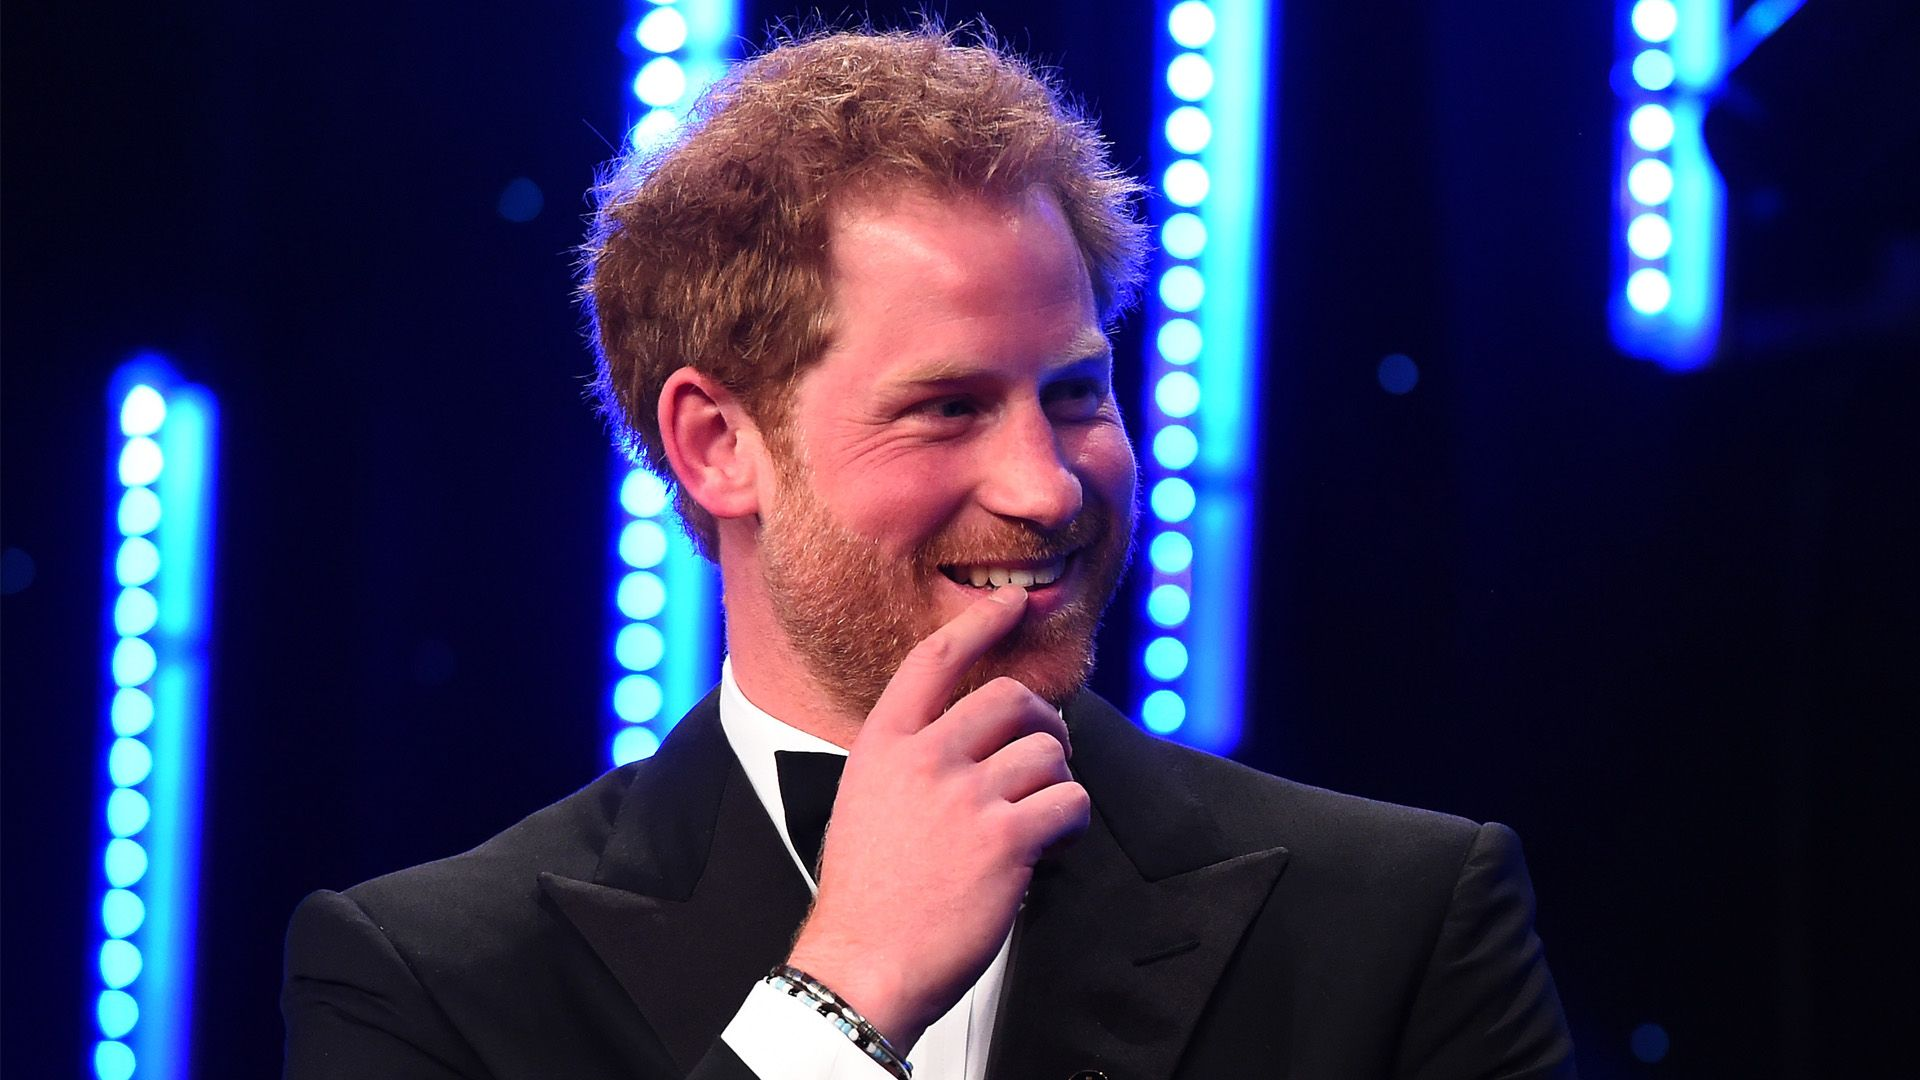 Prince Harry and Prince William's Brotherly Love Is Alive and Well